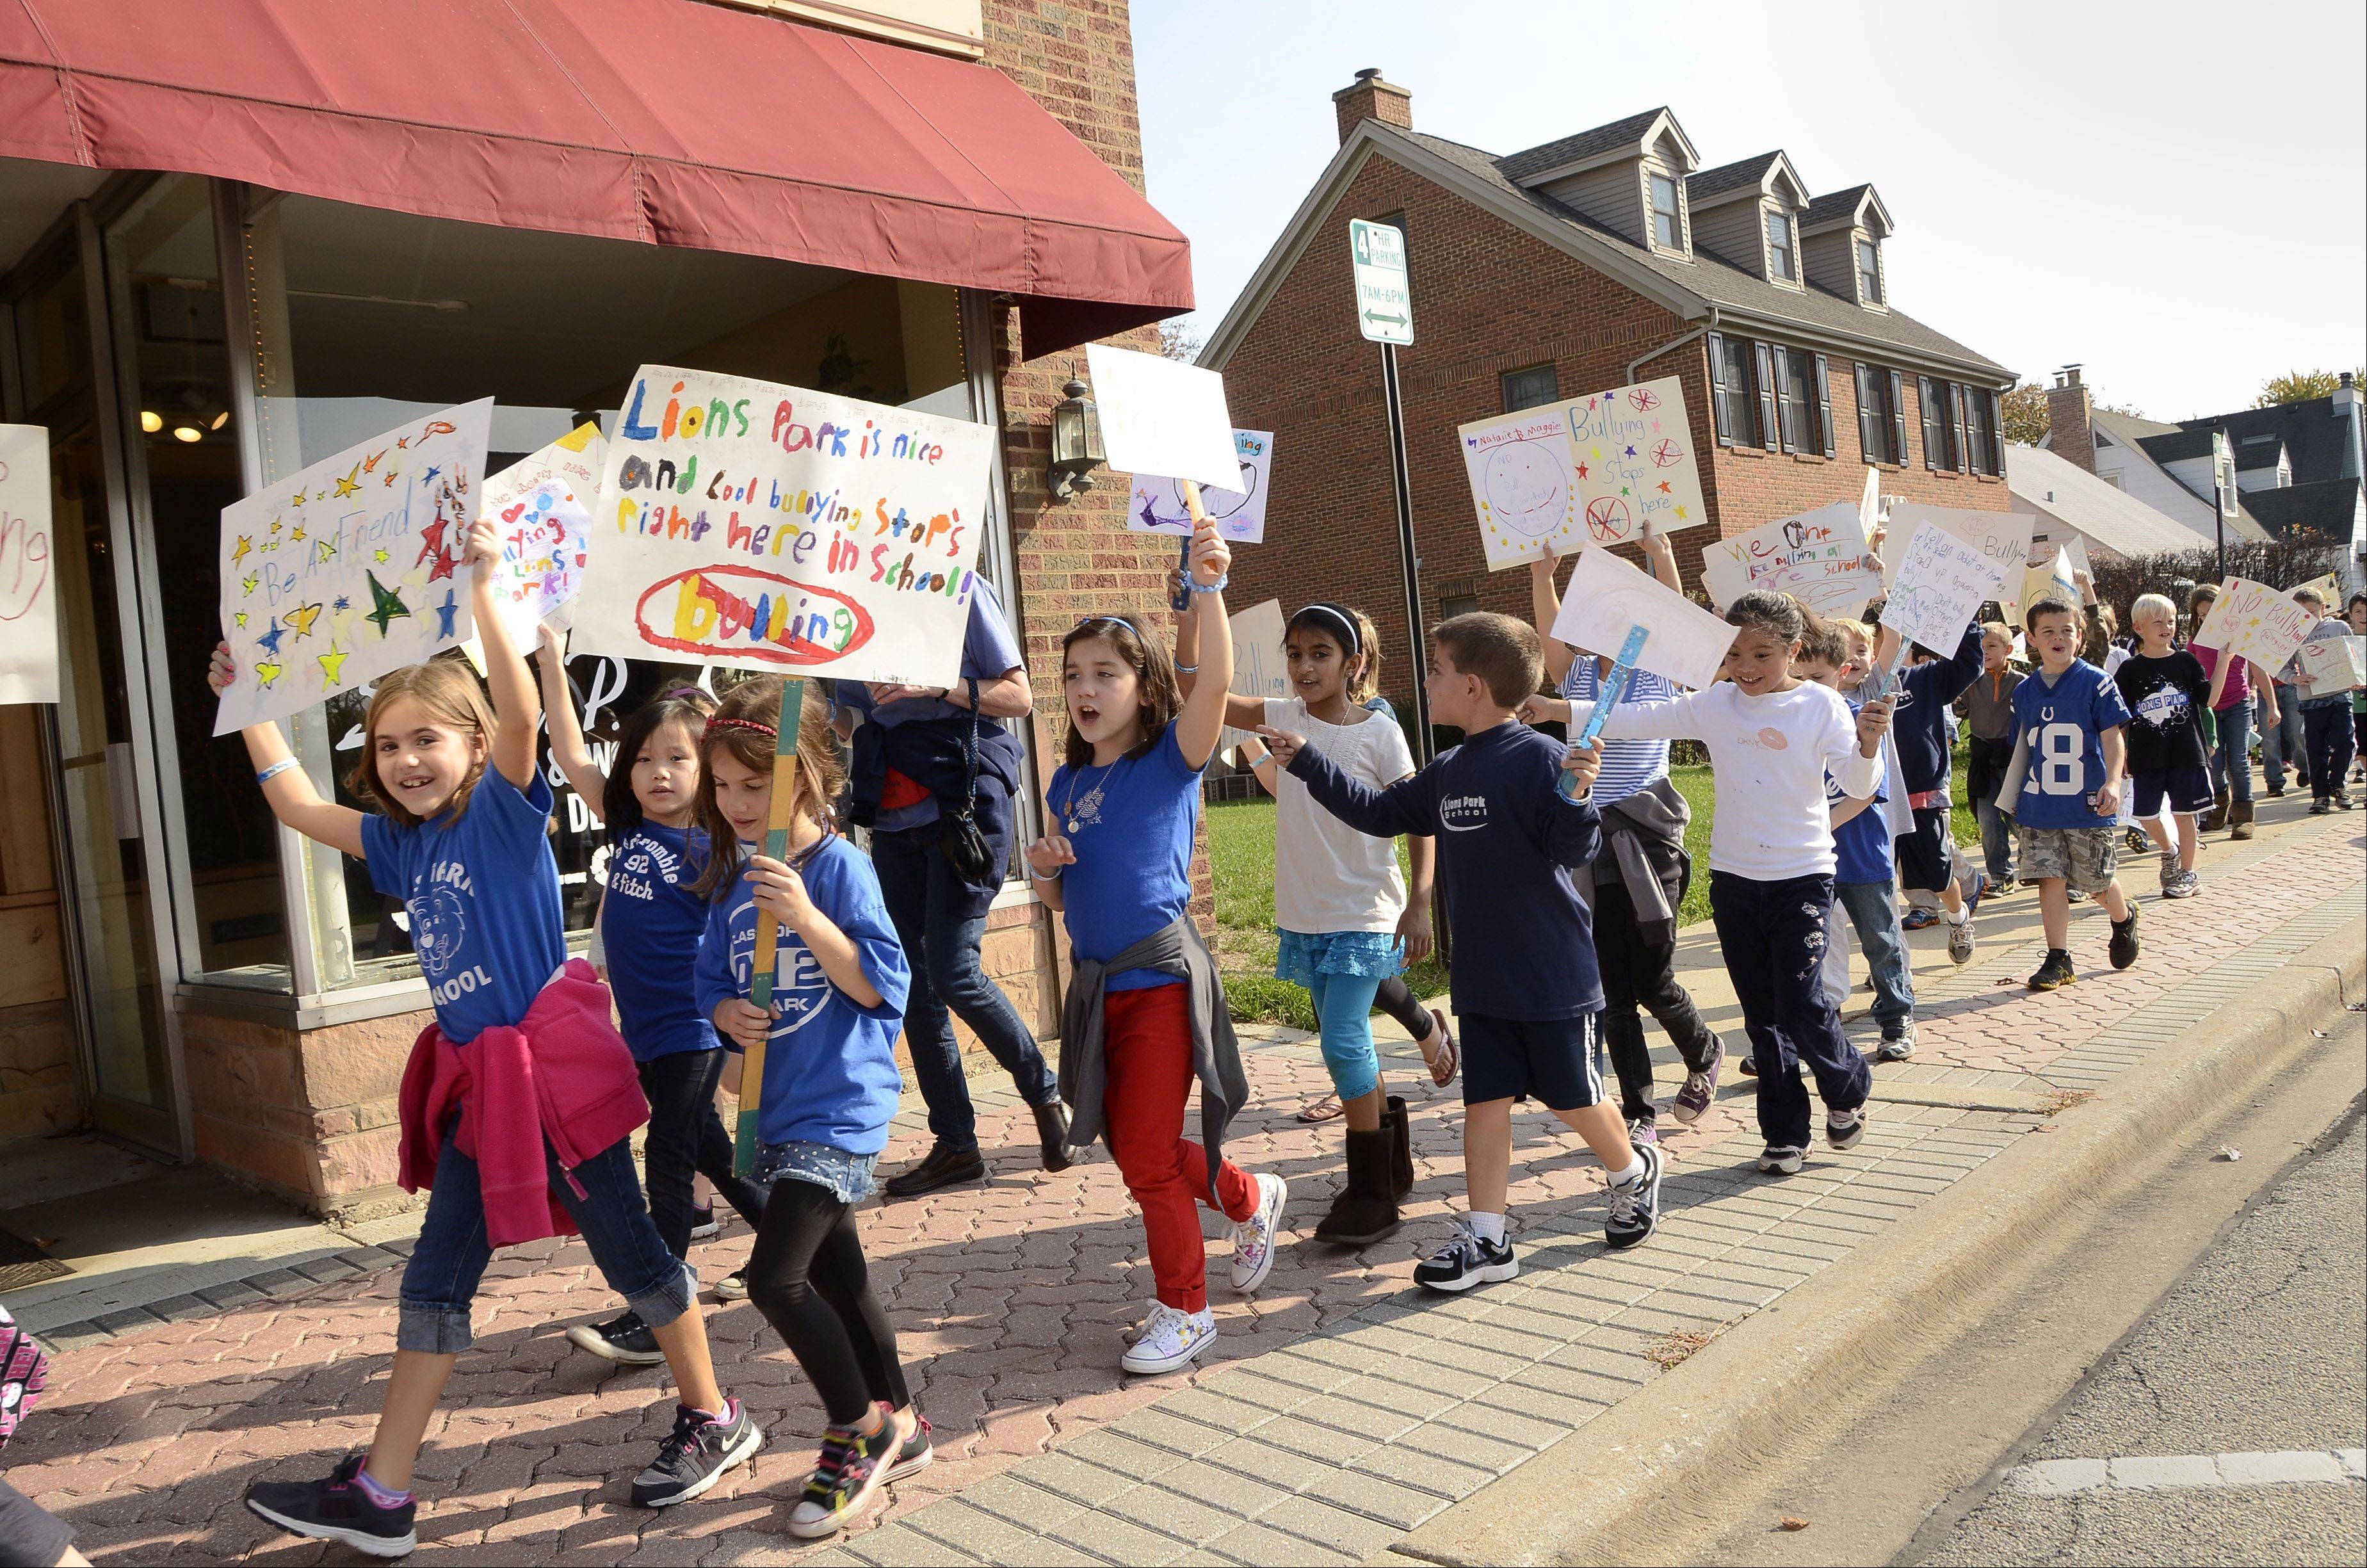 Lions Park School students march in downtown Mount Prospect carrying anti-bullying signs they made for the event. The march was part of the first Stand Up to Bullying Week in Mount Prospect Elementary District 57.